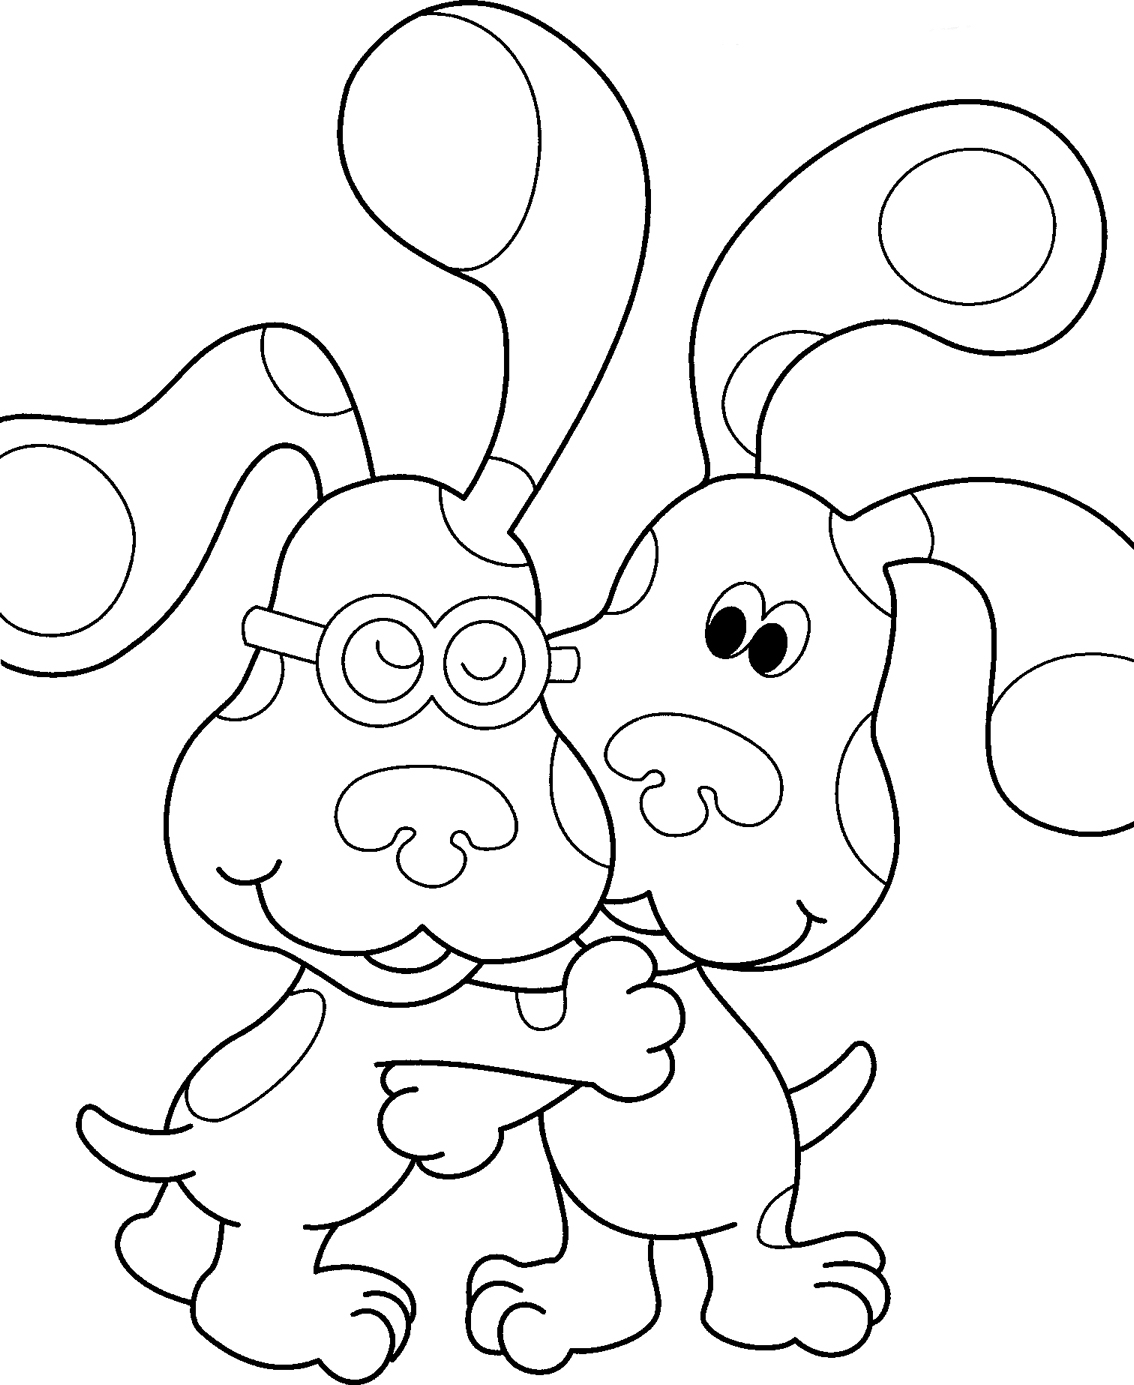 1134x1385 Blue's Clues Coloring Page Coloring Pages For Kids